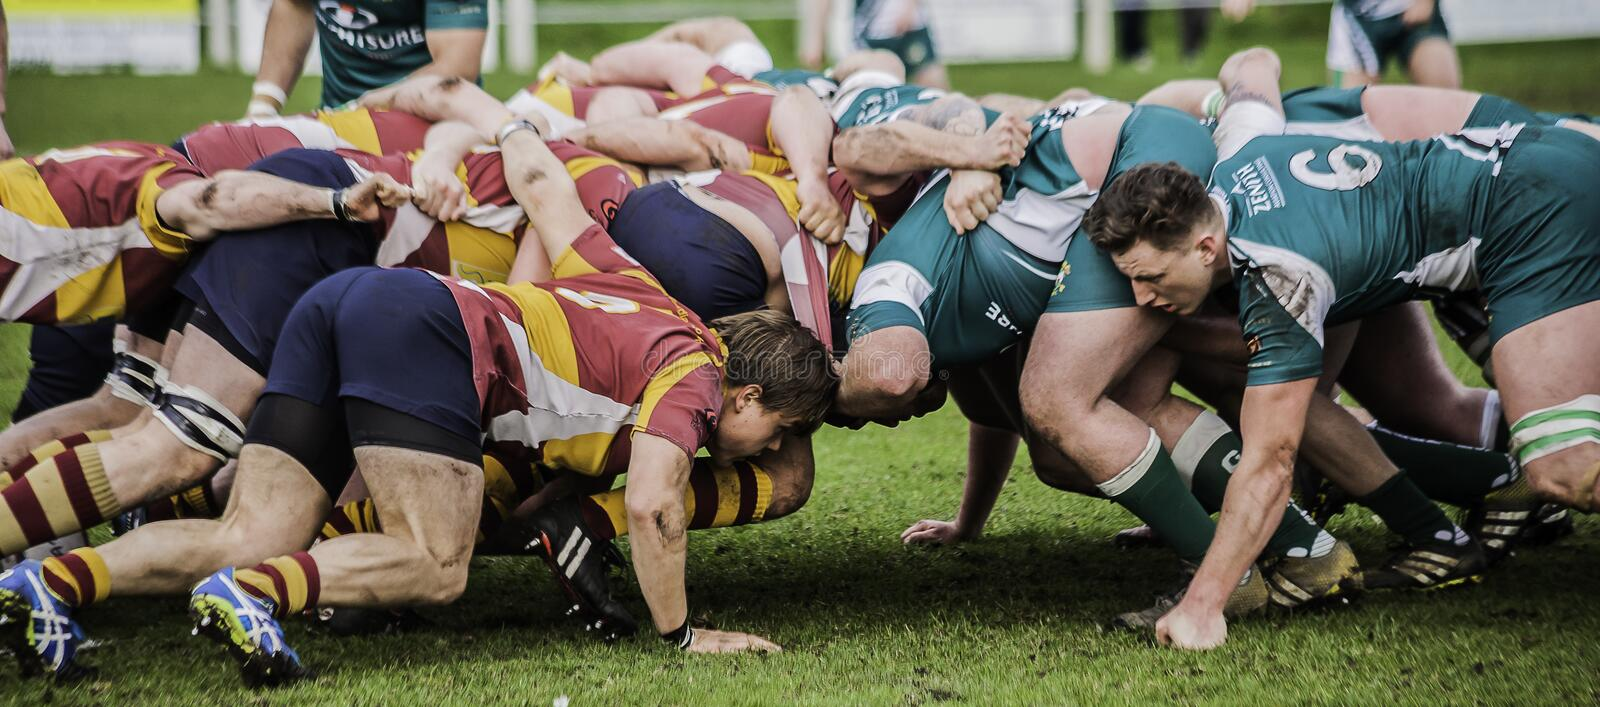 The Rugby Scrum royalty free stock photos